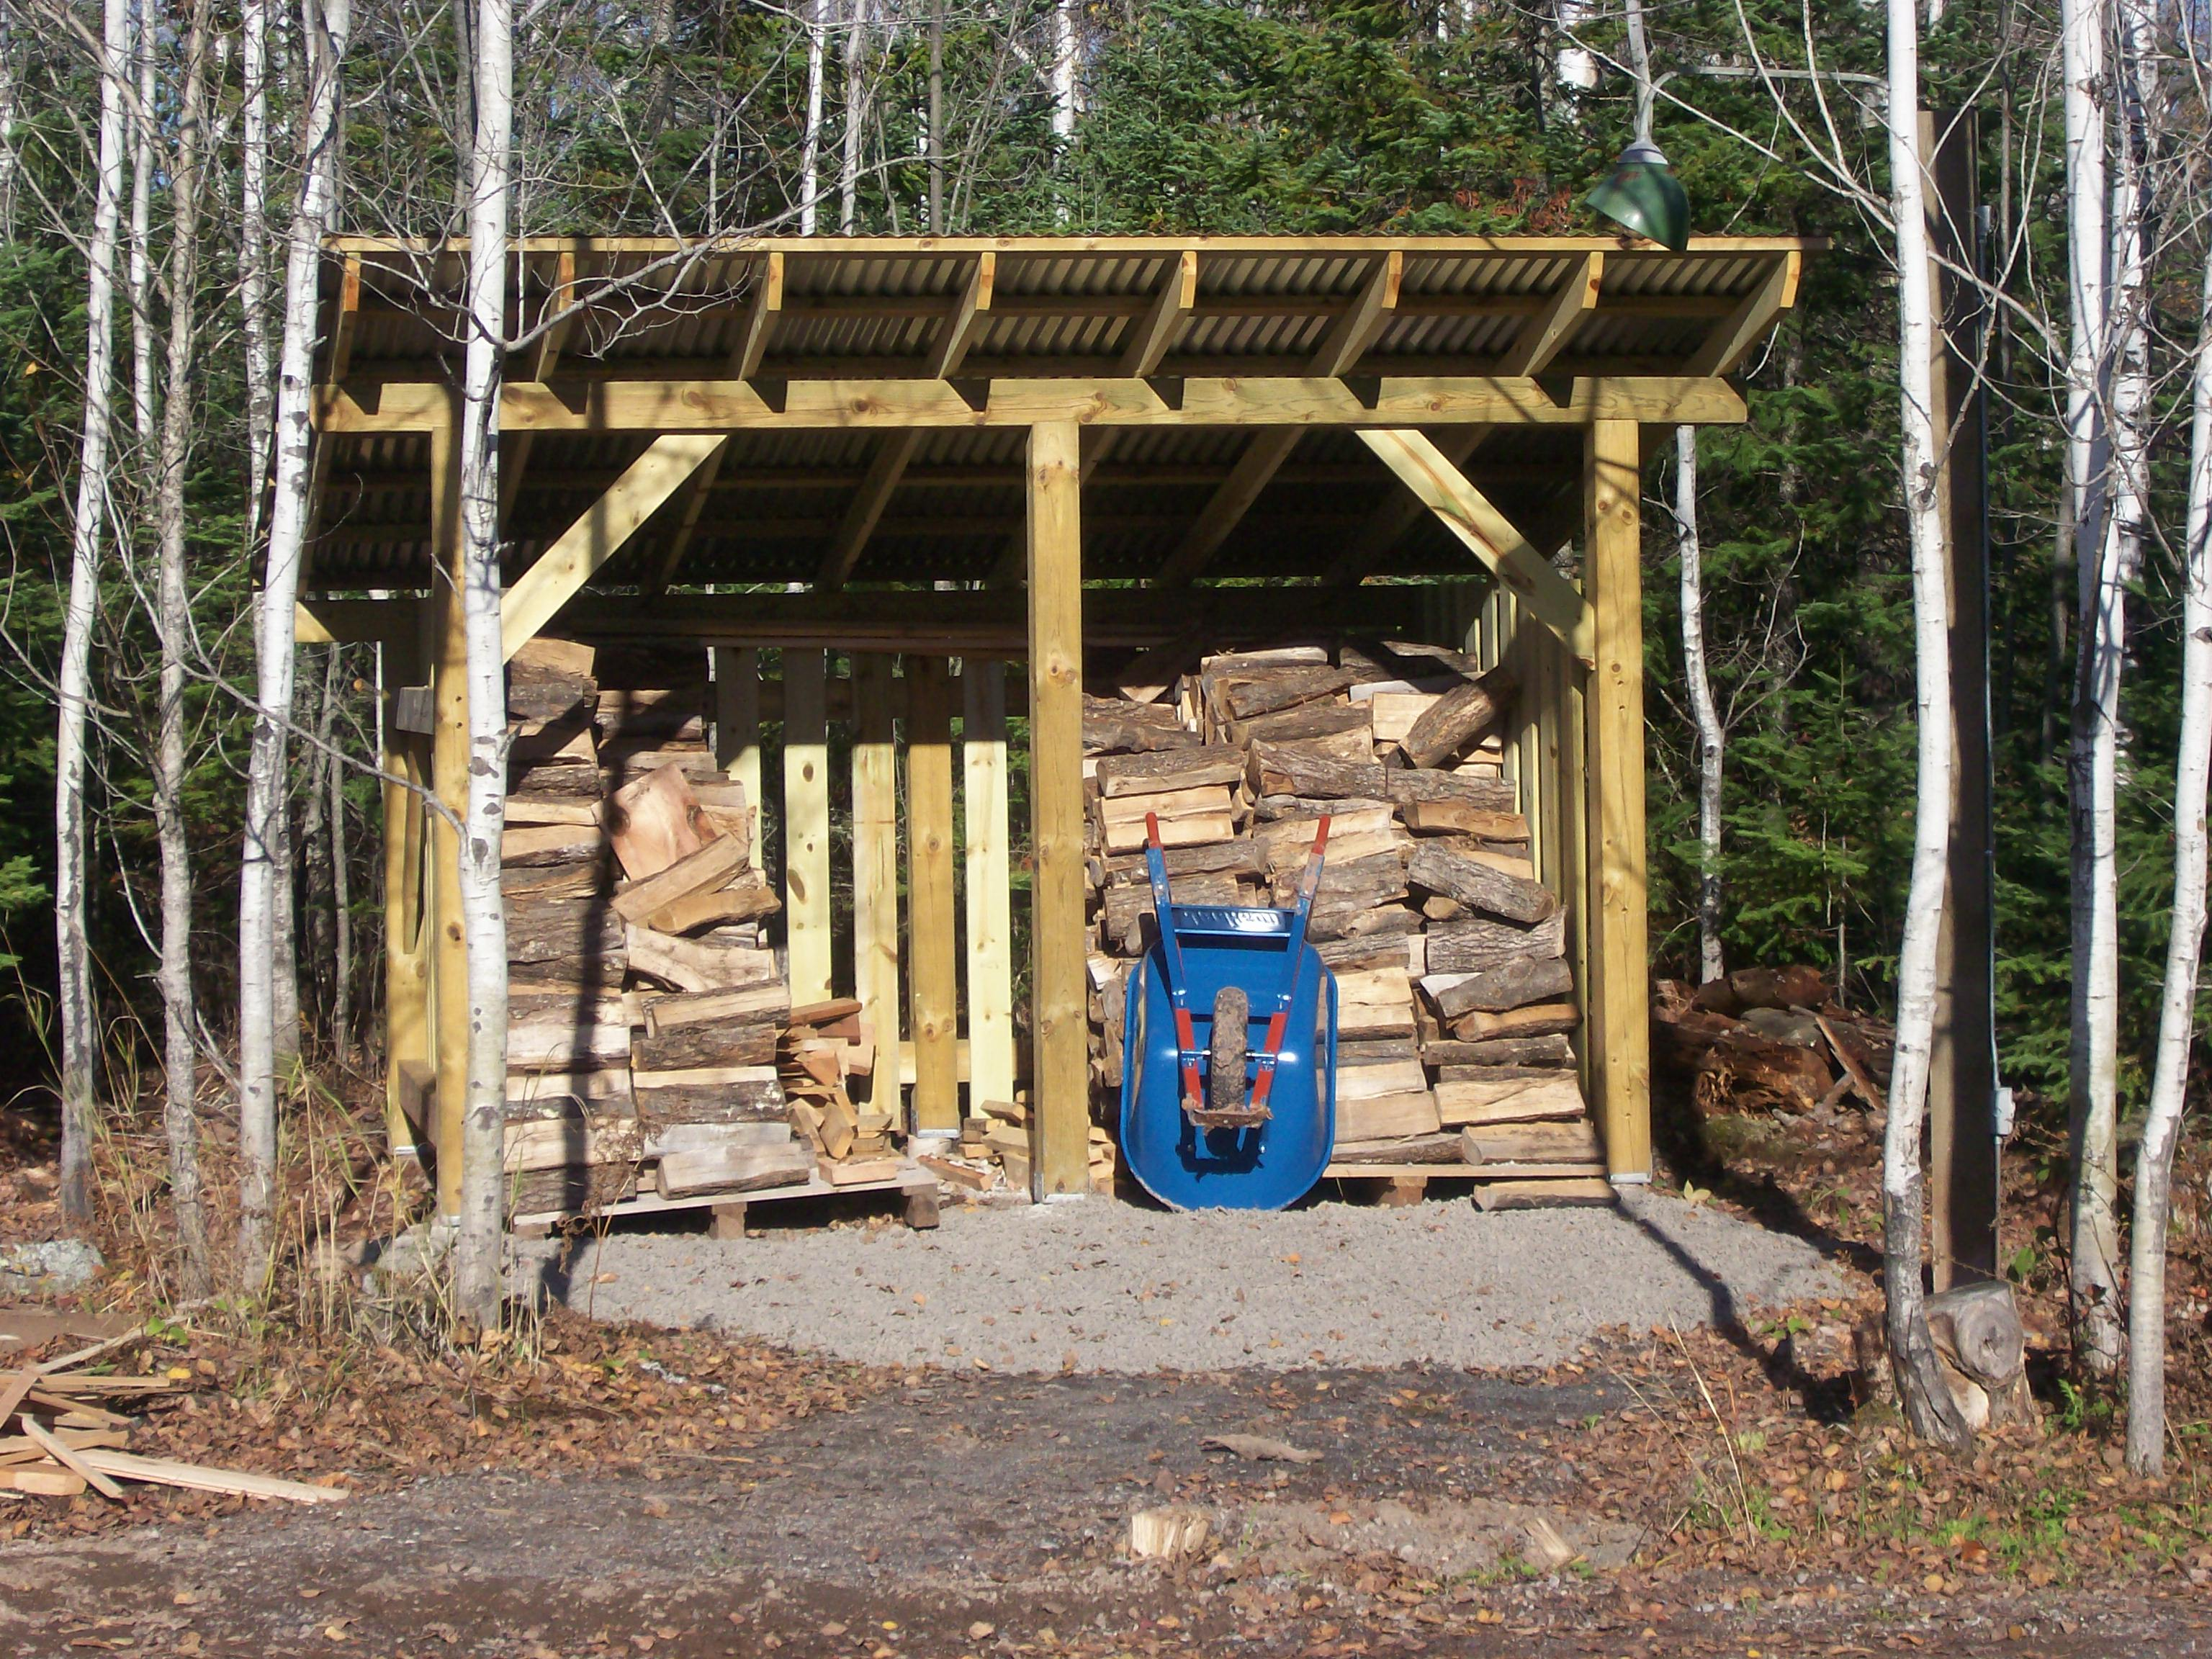 ... Need To Have To Build A Little Tool Shed Yourself | Shed Plans Kits